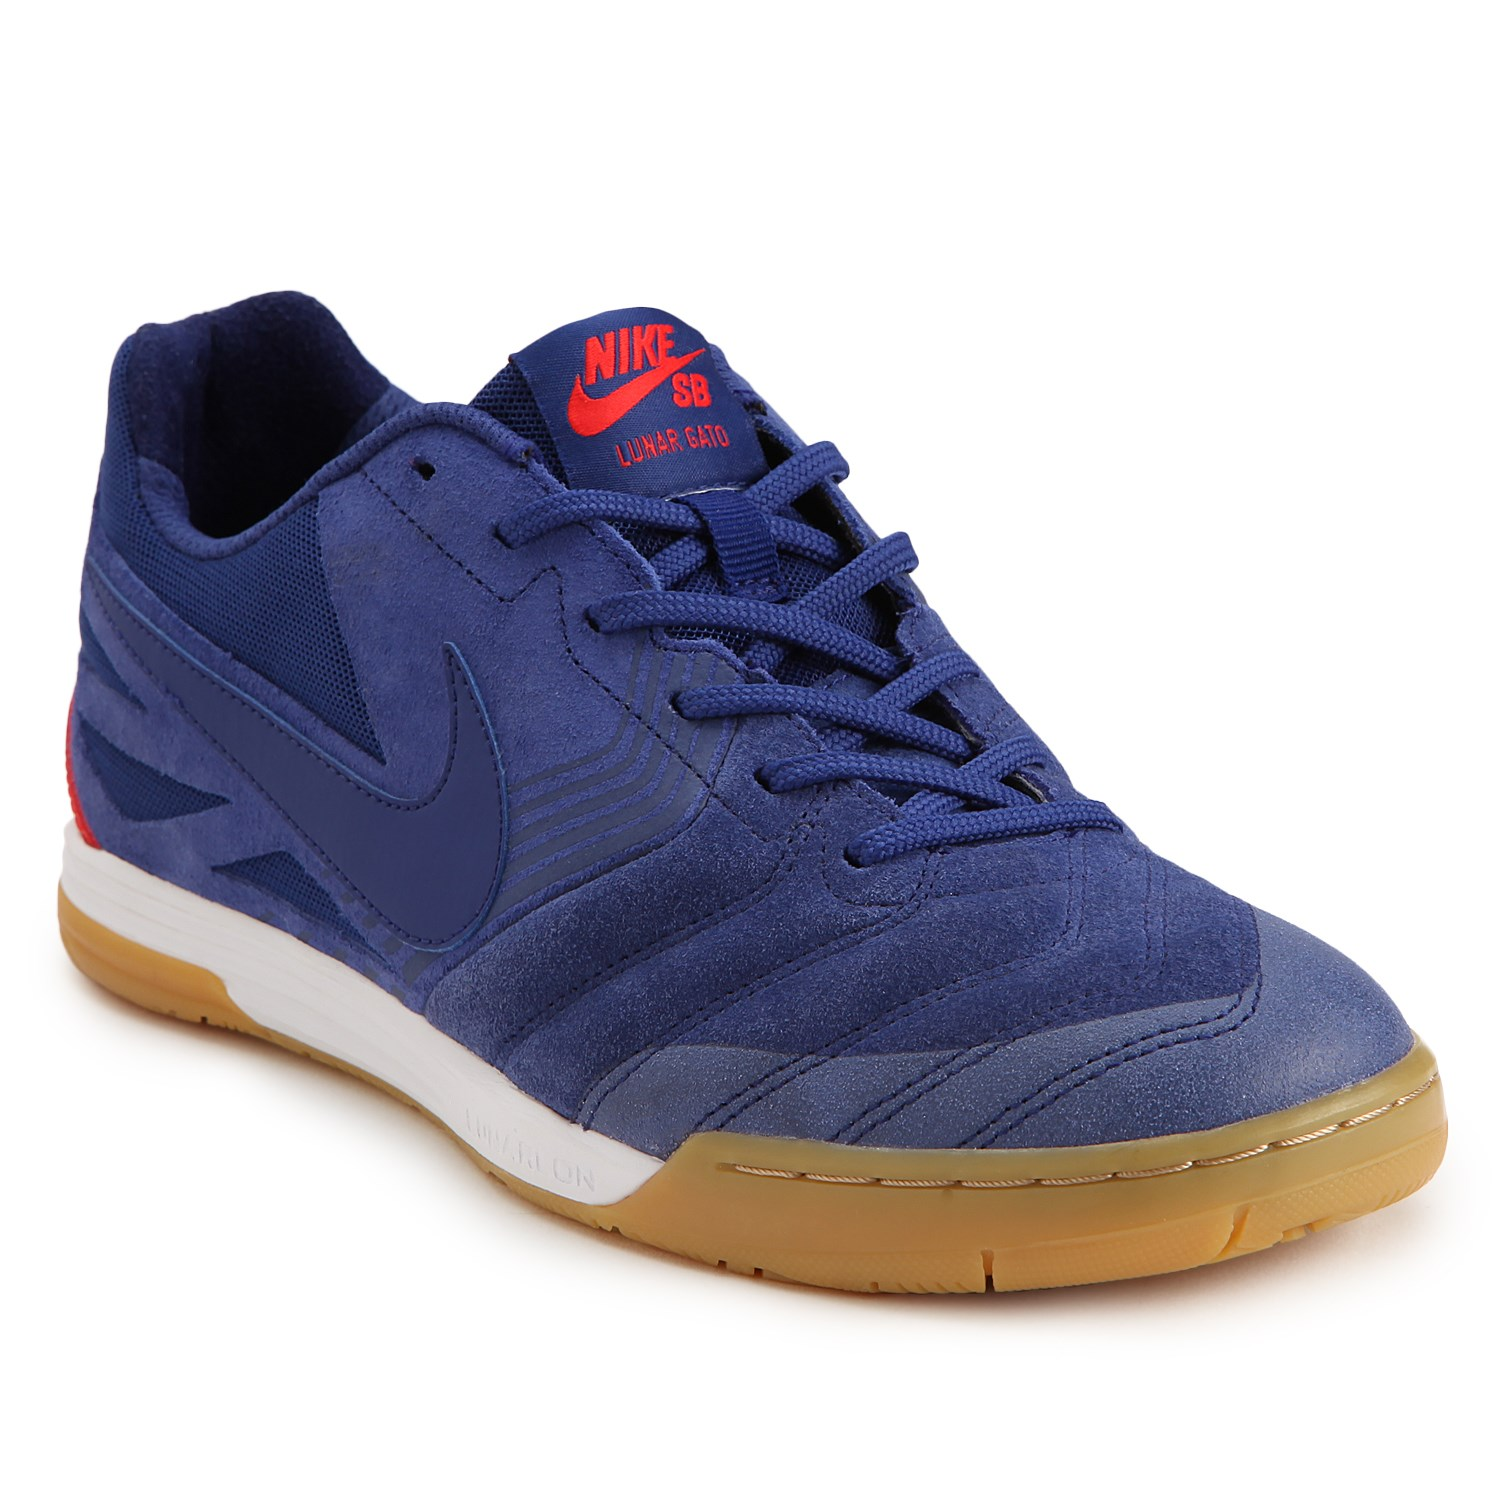 save off 7ae6f 045ec Nike SB Lunar Gato Shoes   evo